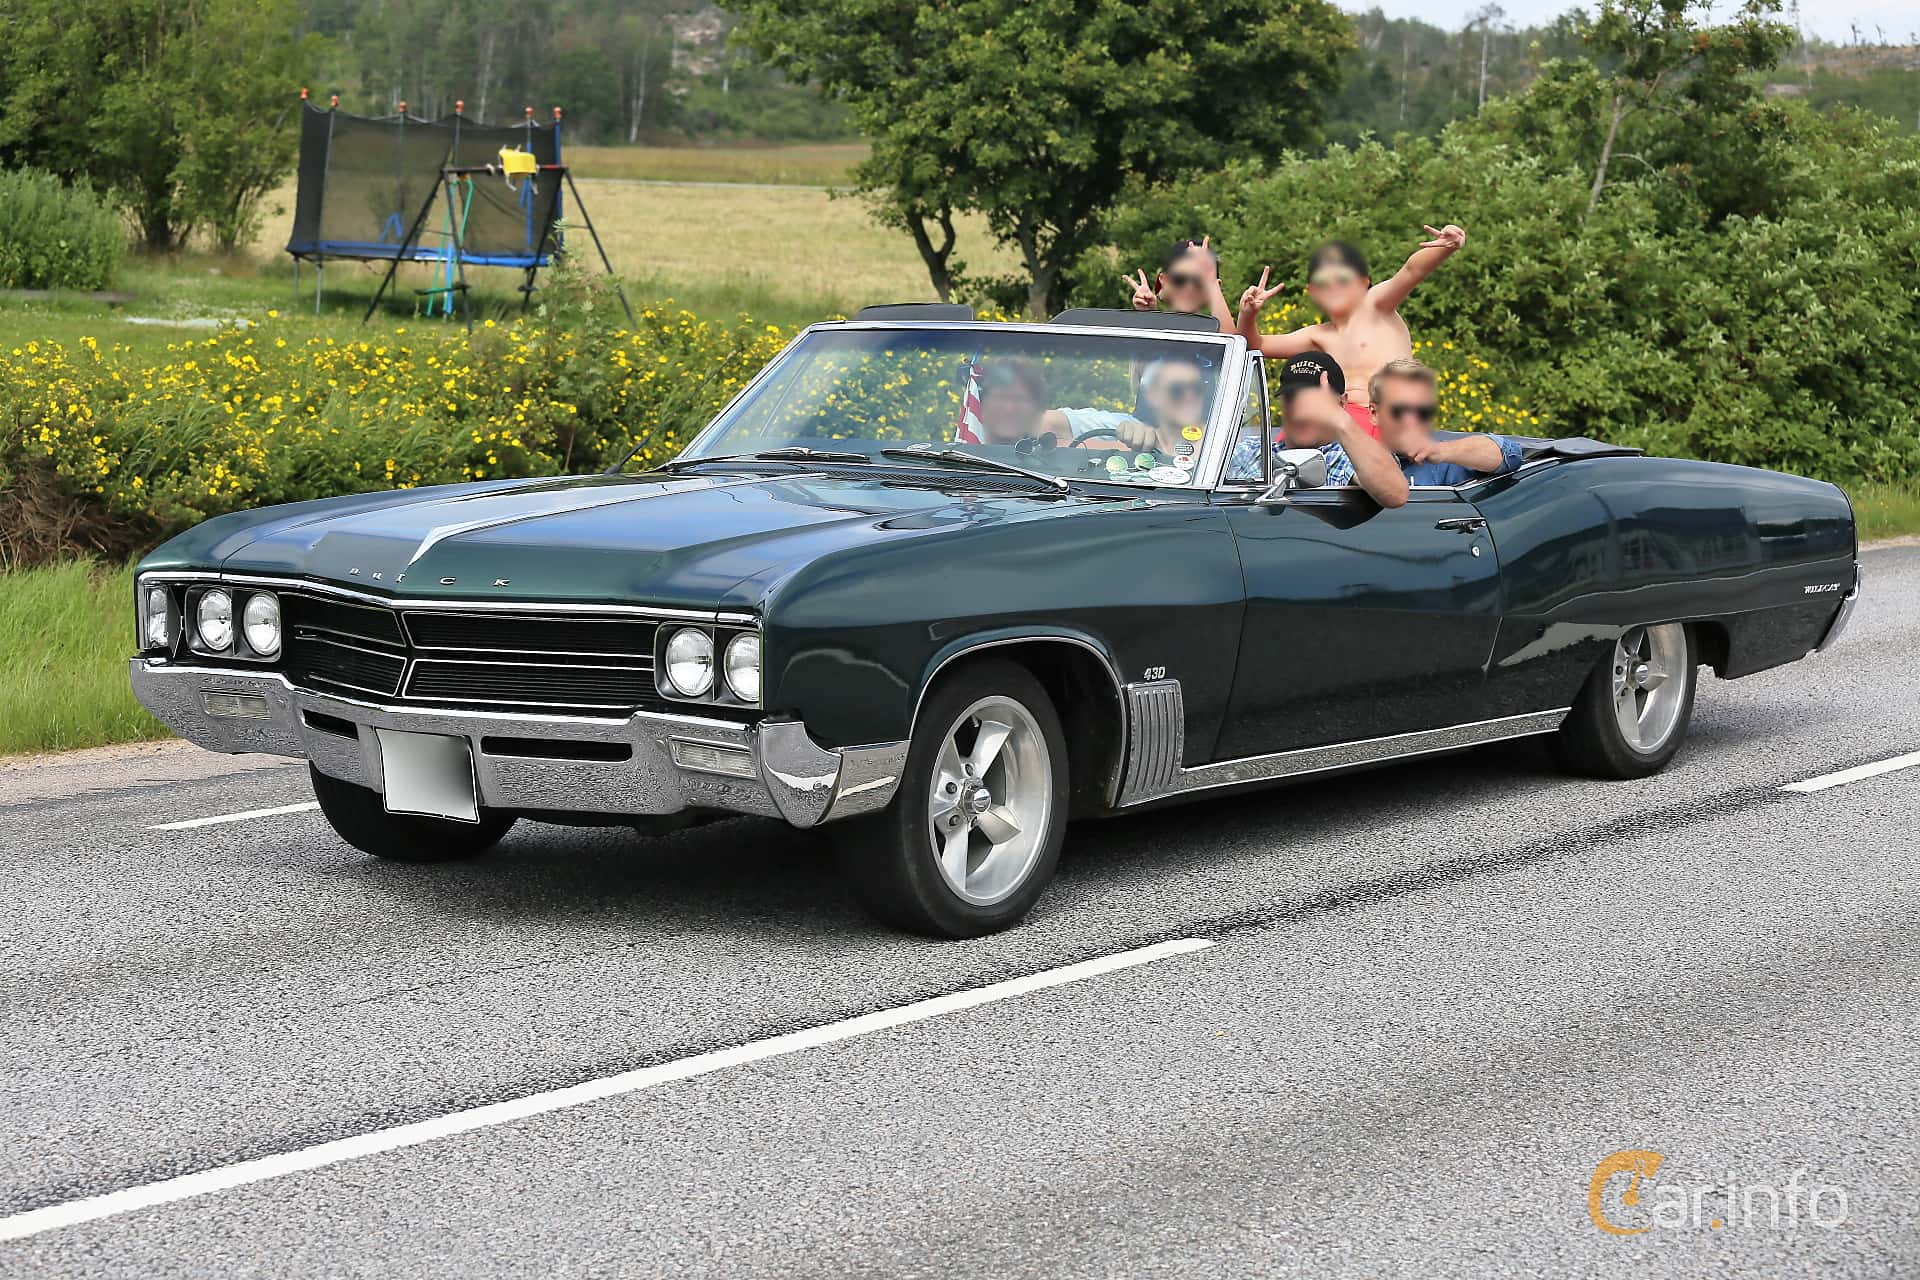 1 images of Buick Wildcat Custom Convertible 7 0 V8